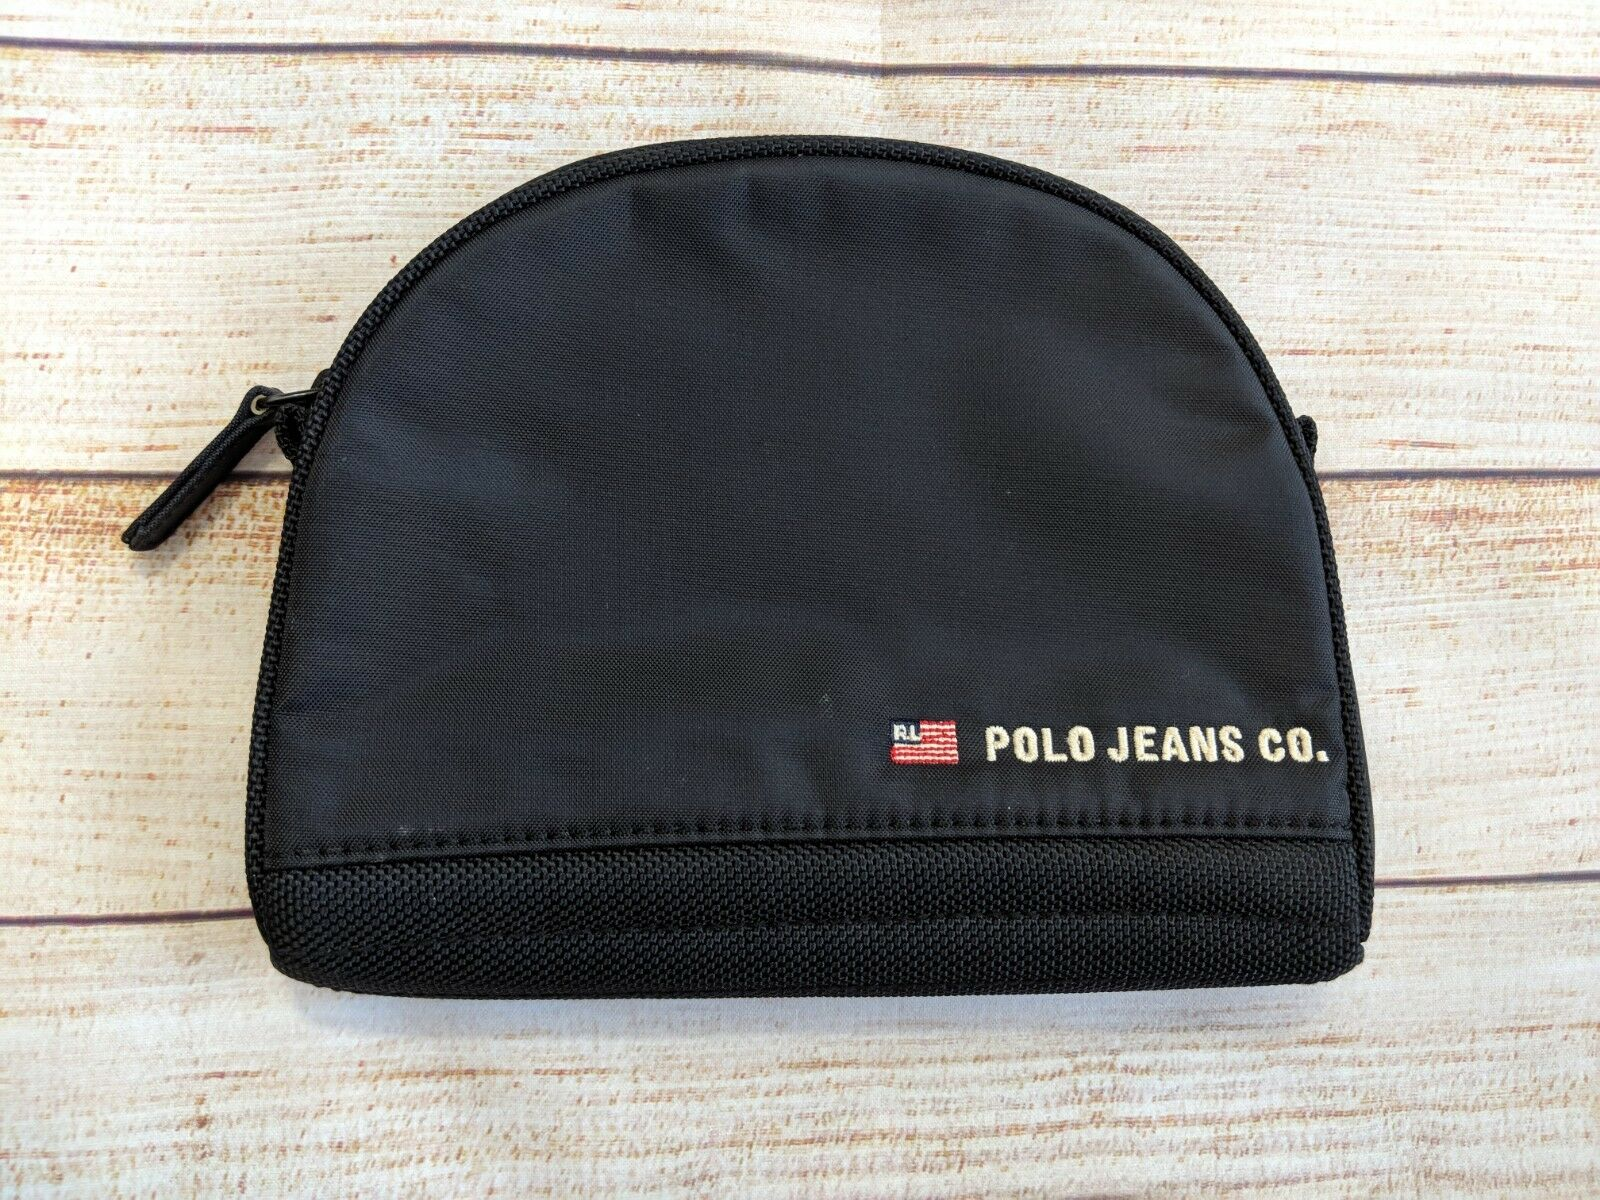 Polo Jeans Ralph Lauren Toiletry Travel Lavatory Zip Kit Black - $6.49